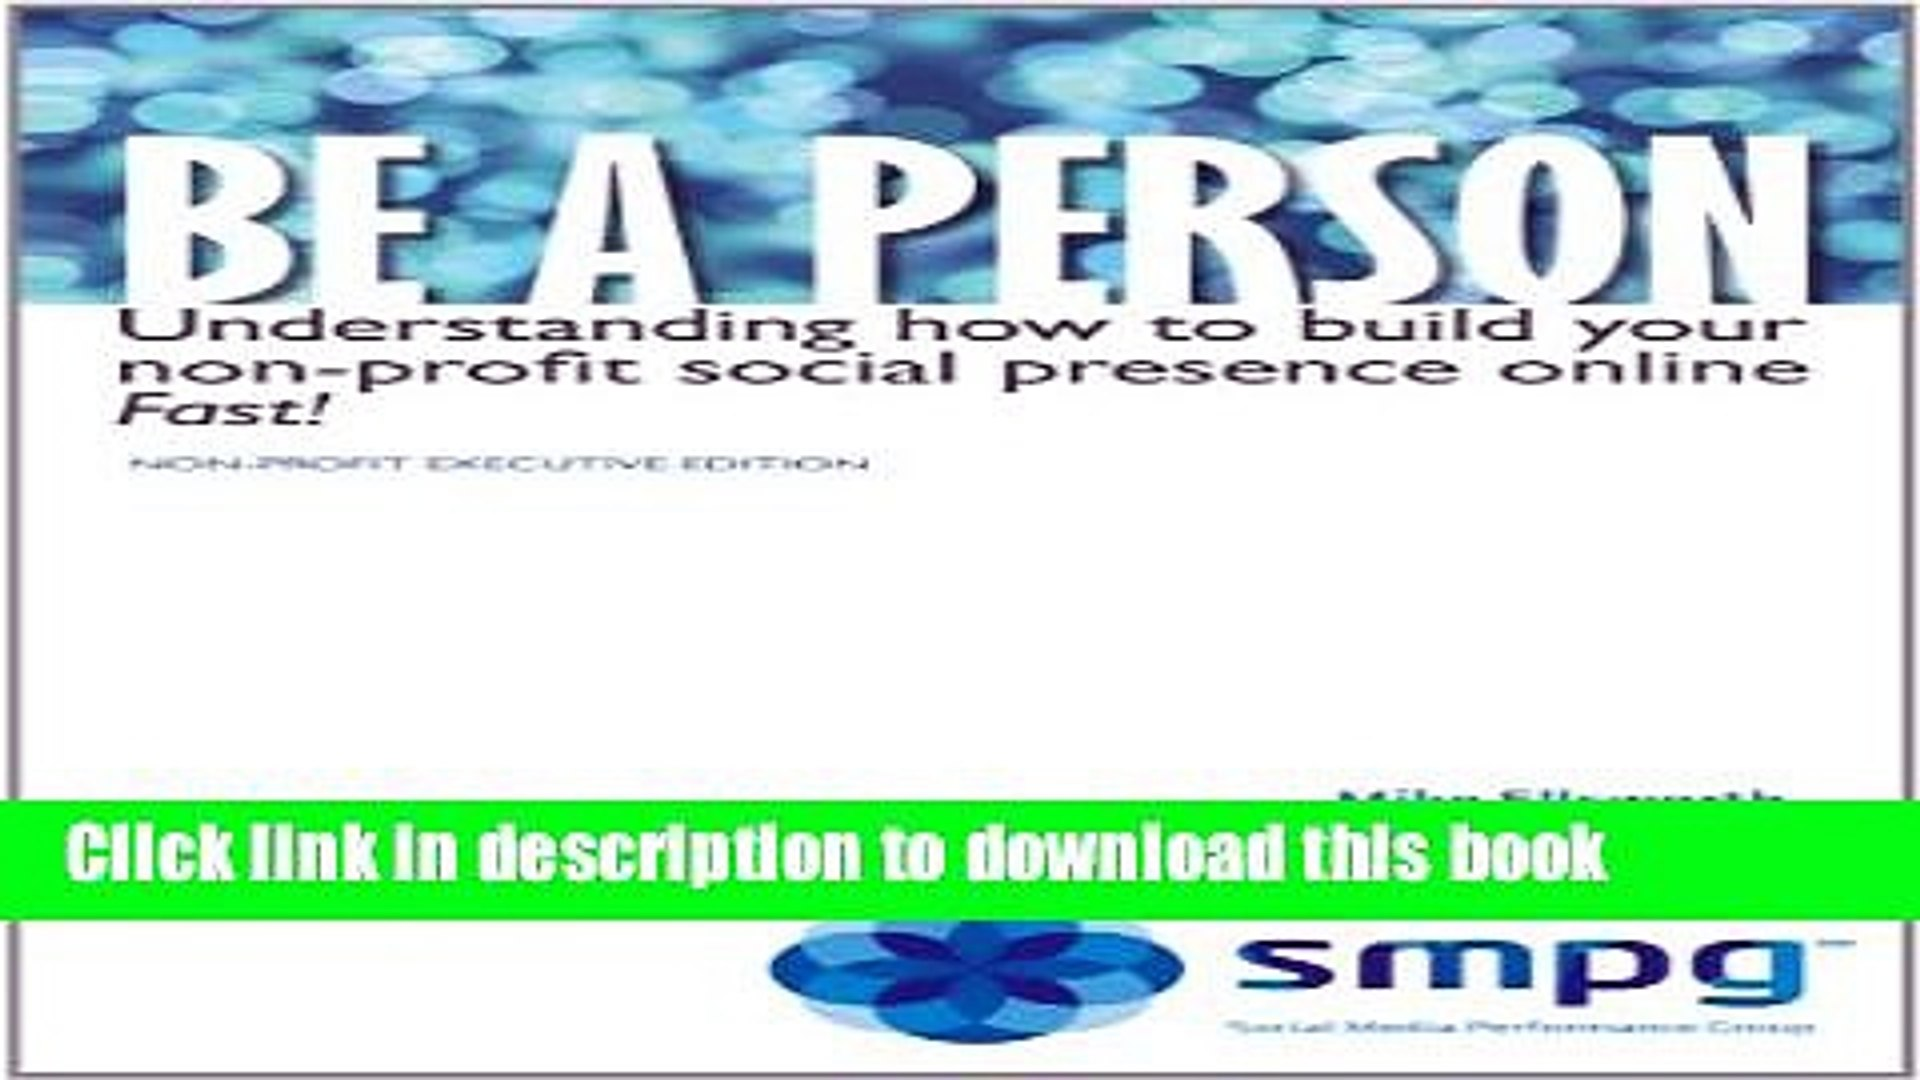 Ebook Be a Person - Non-Profit Executive Edition (Everything you need to build your social